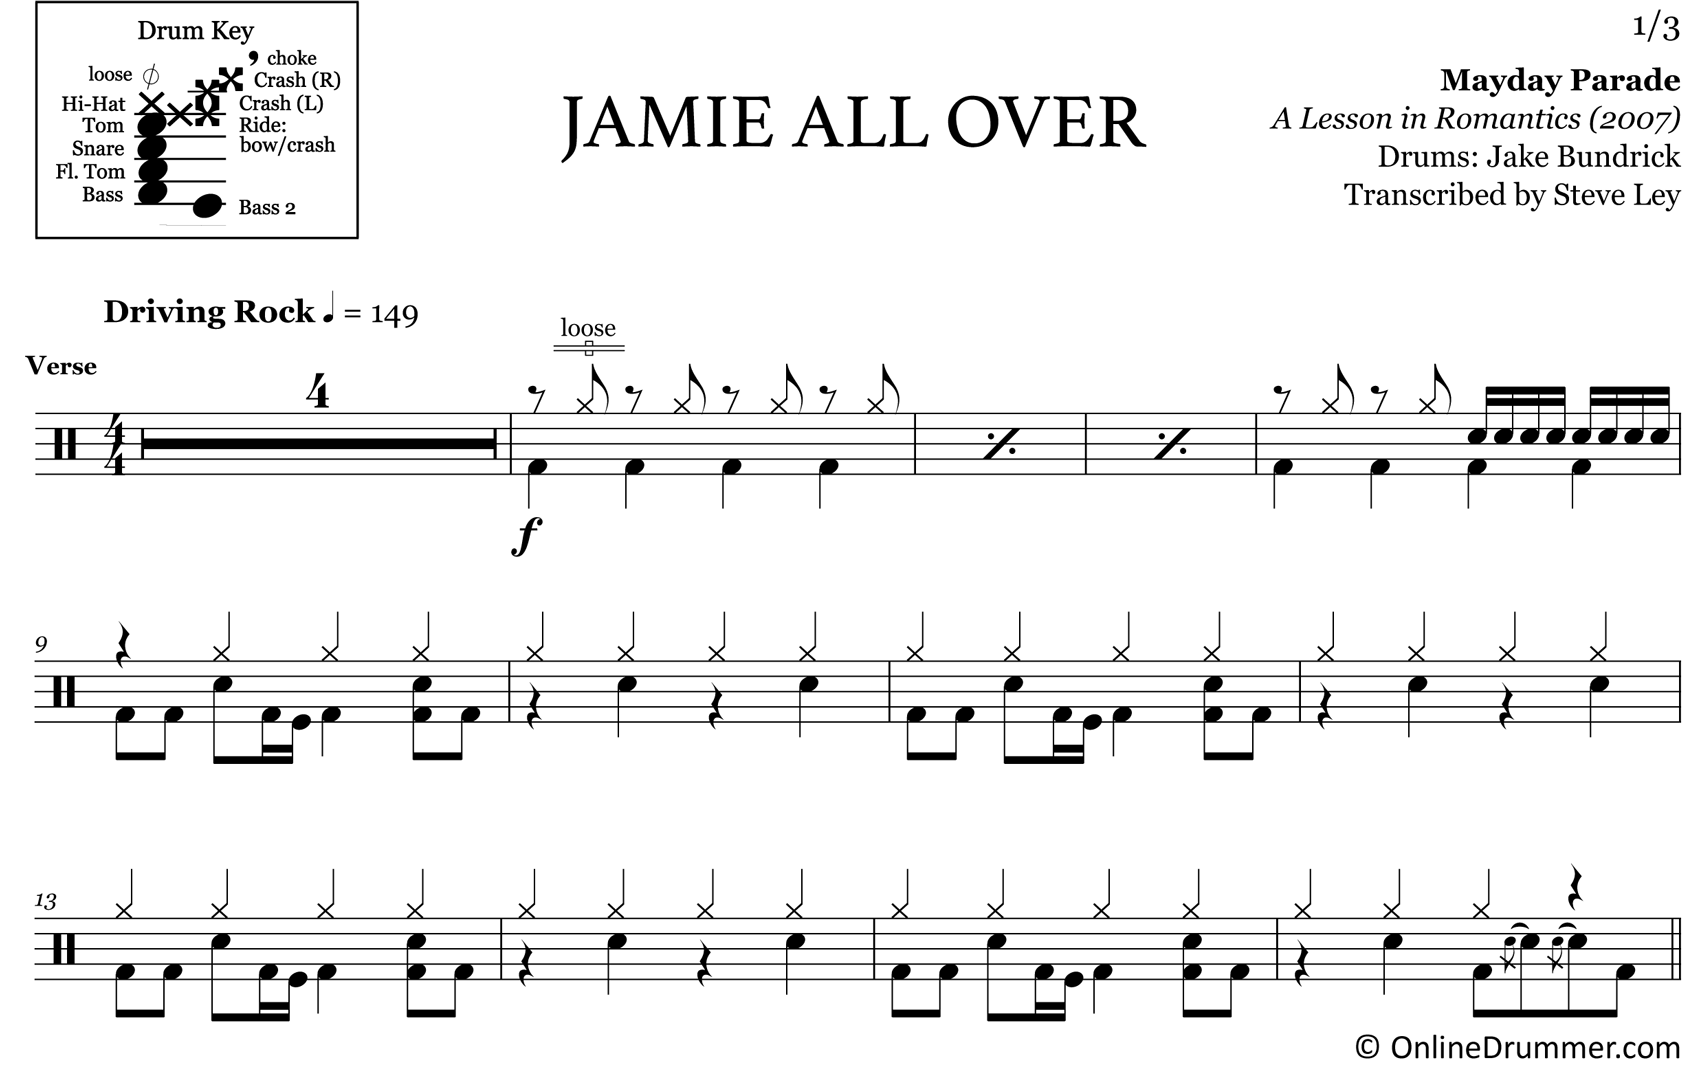 Jamie All Over - Mayday Parade - Drum Sheet Music